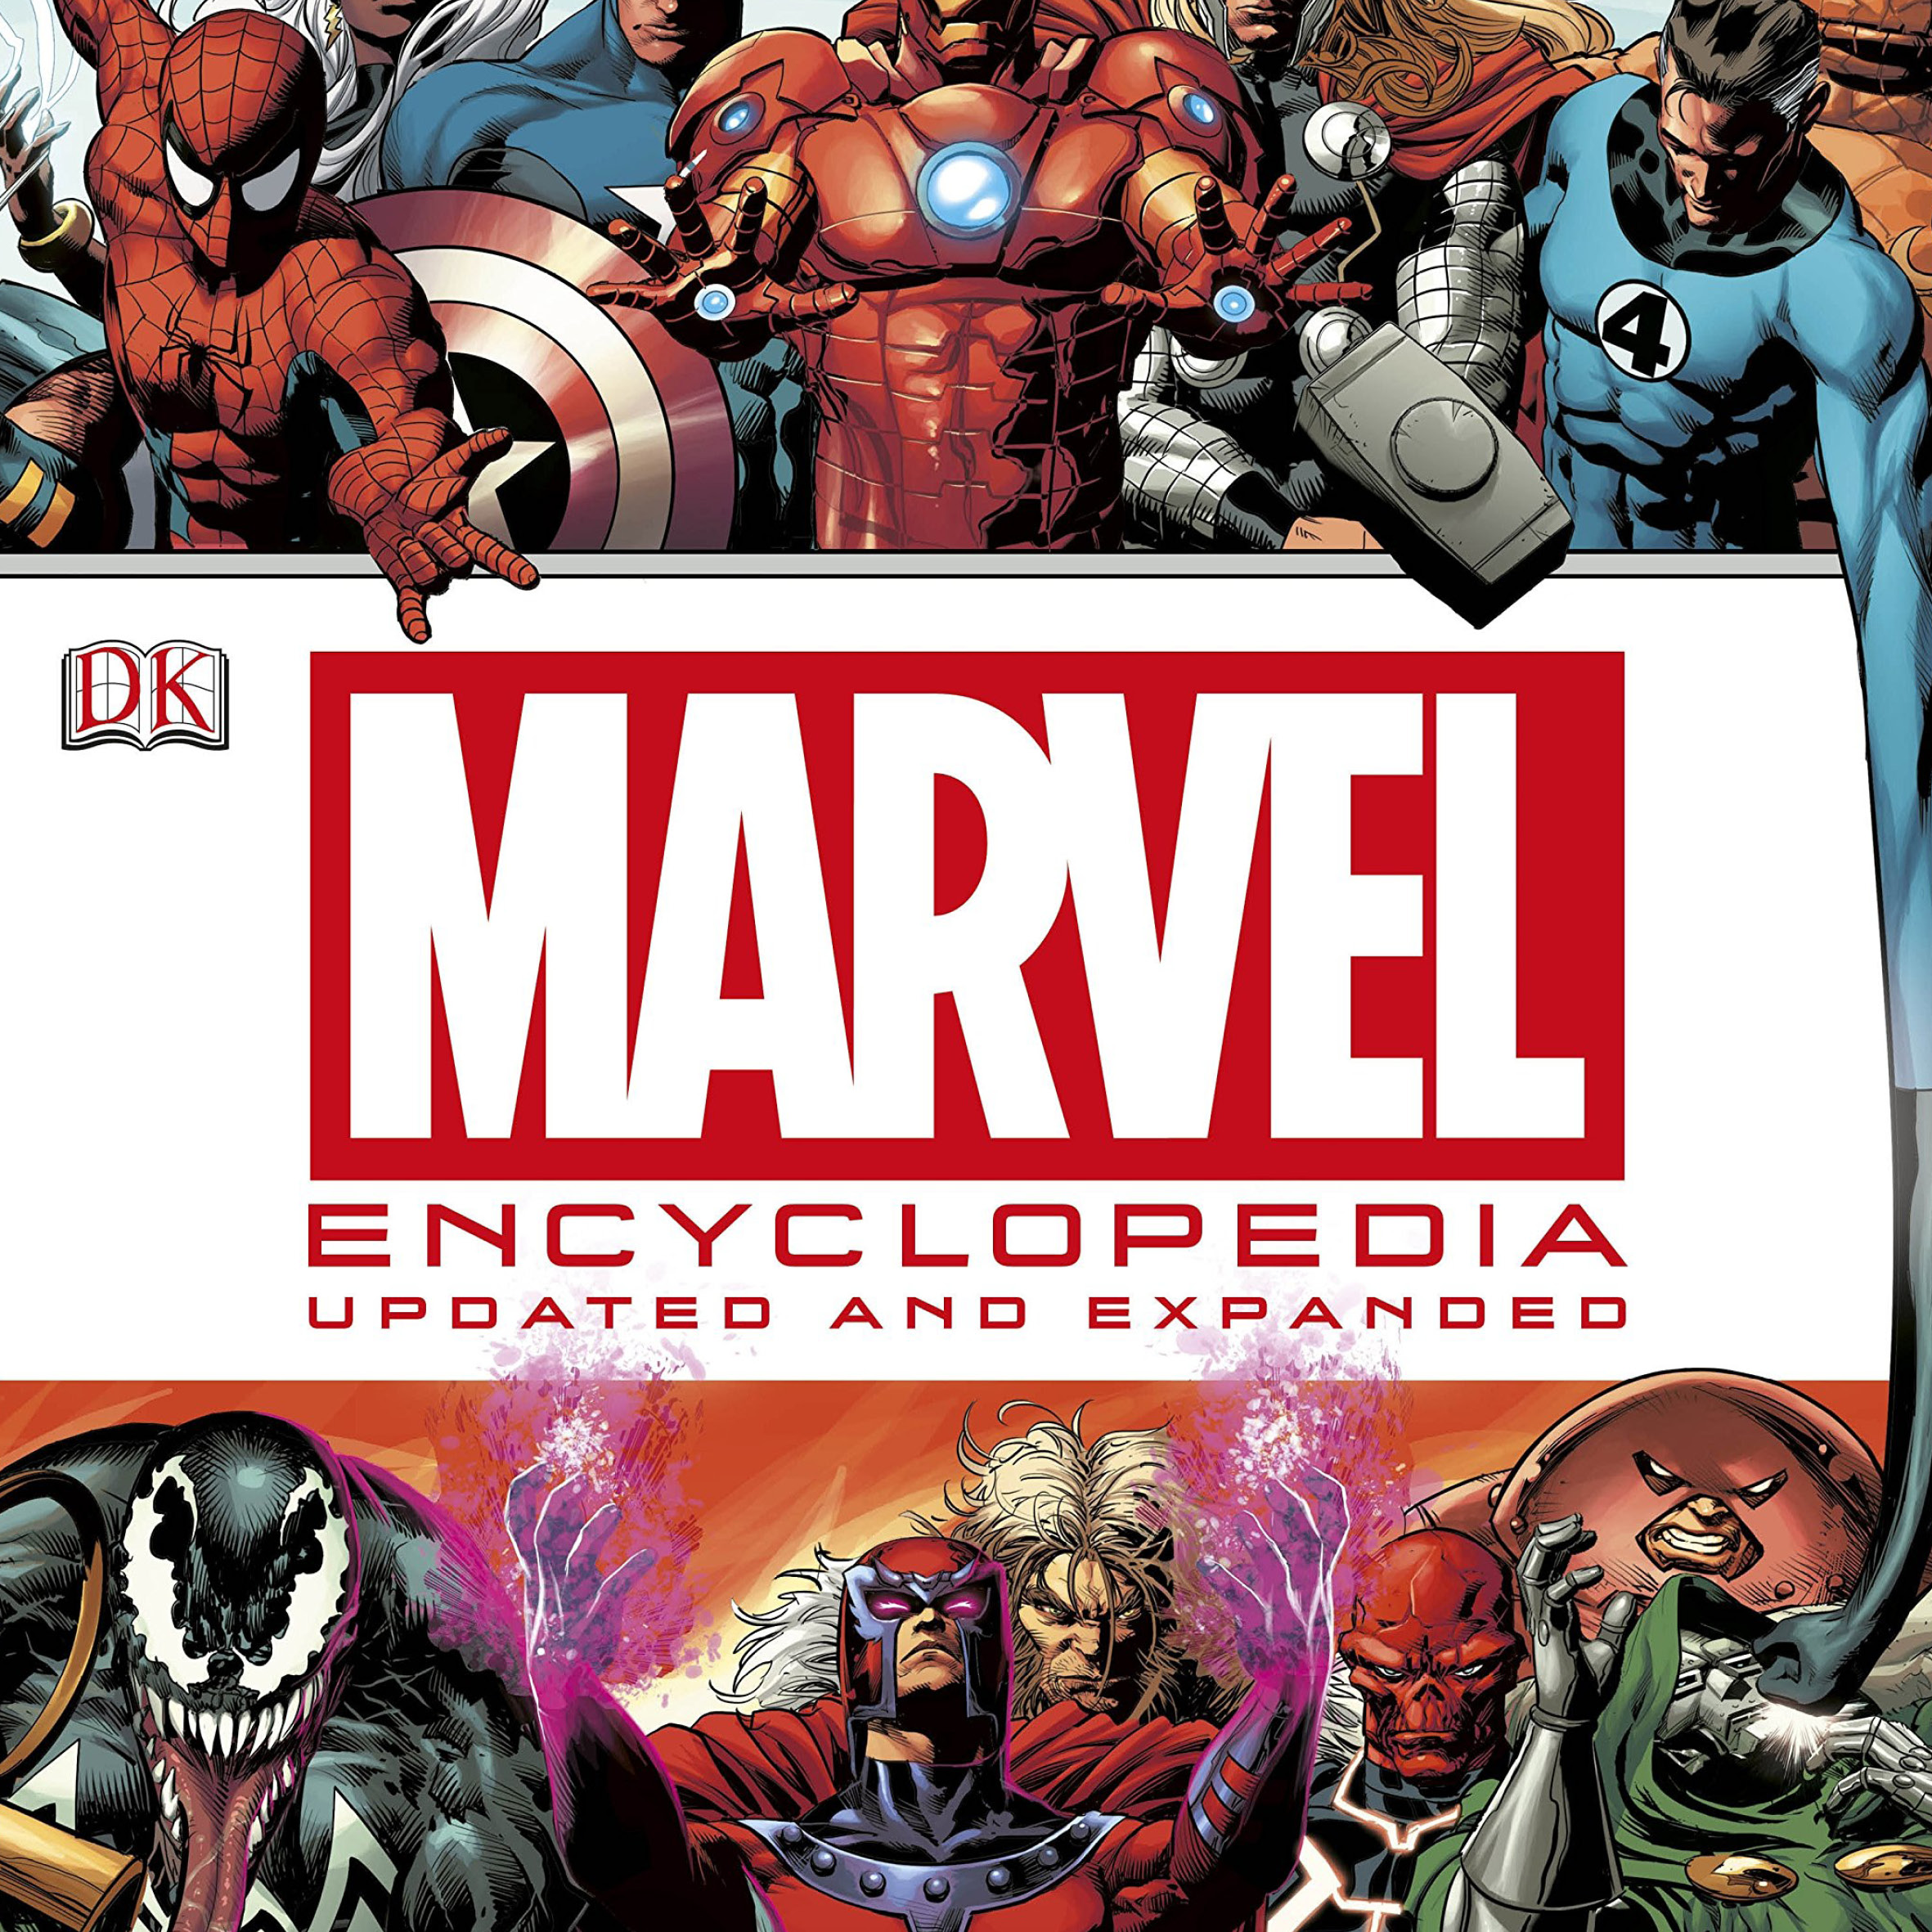 MARVEL ENCYCLOPAEDIA THUMB